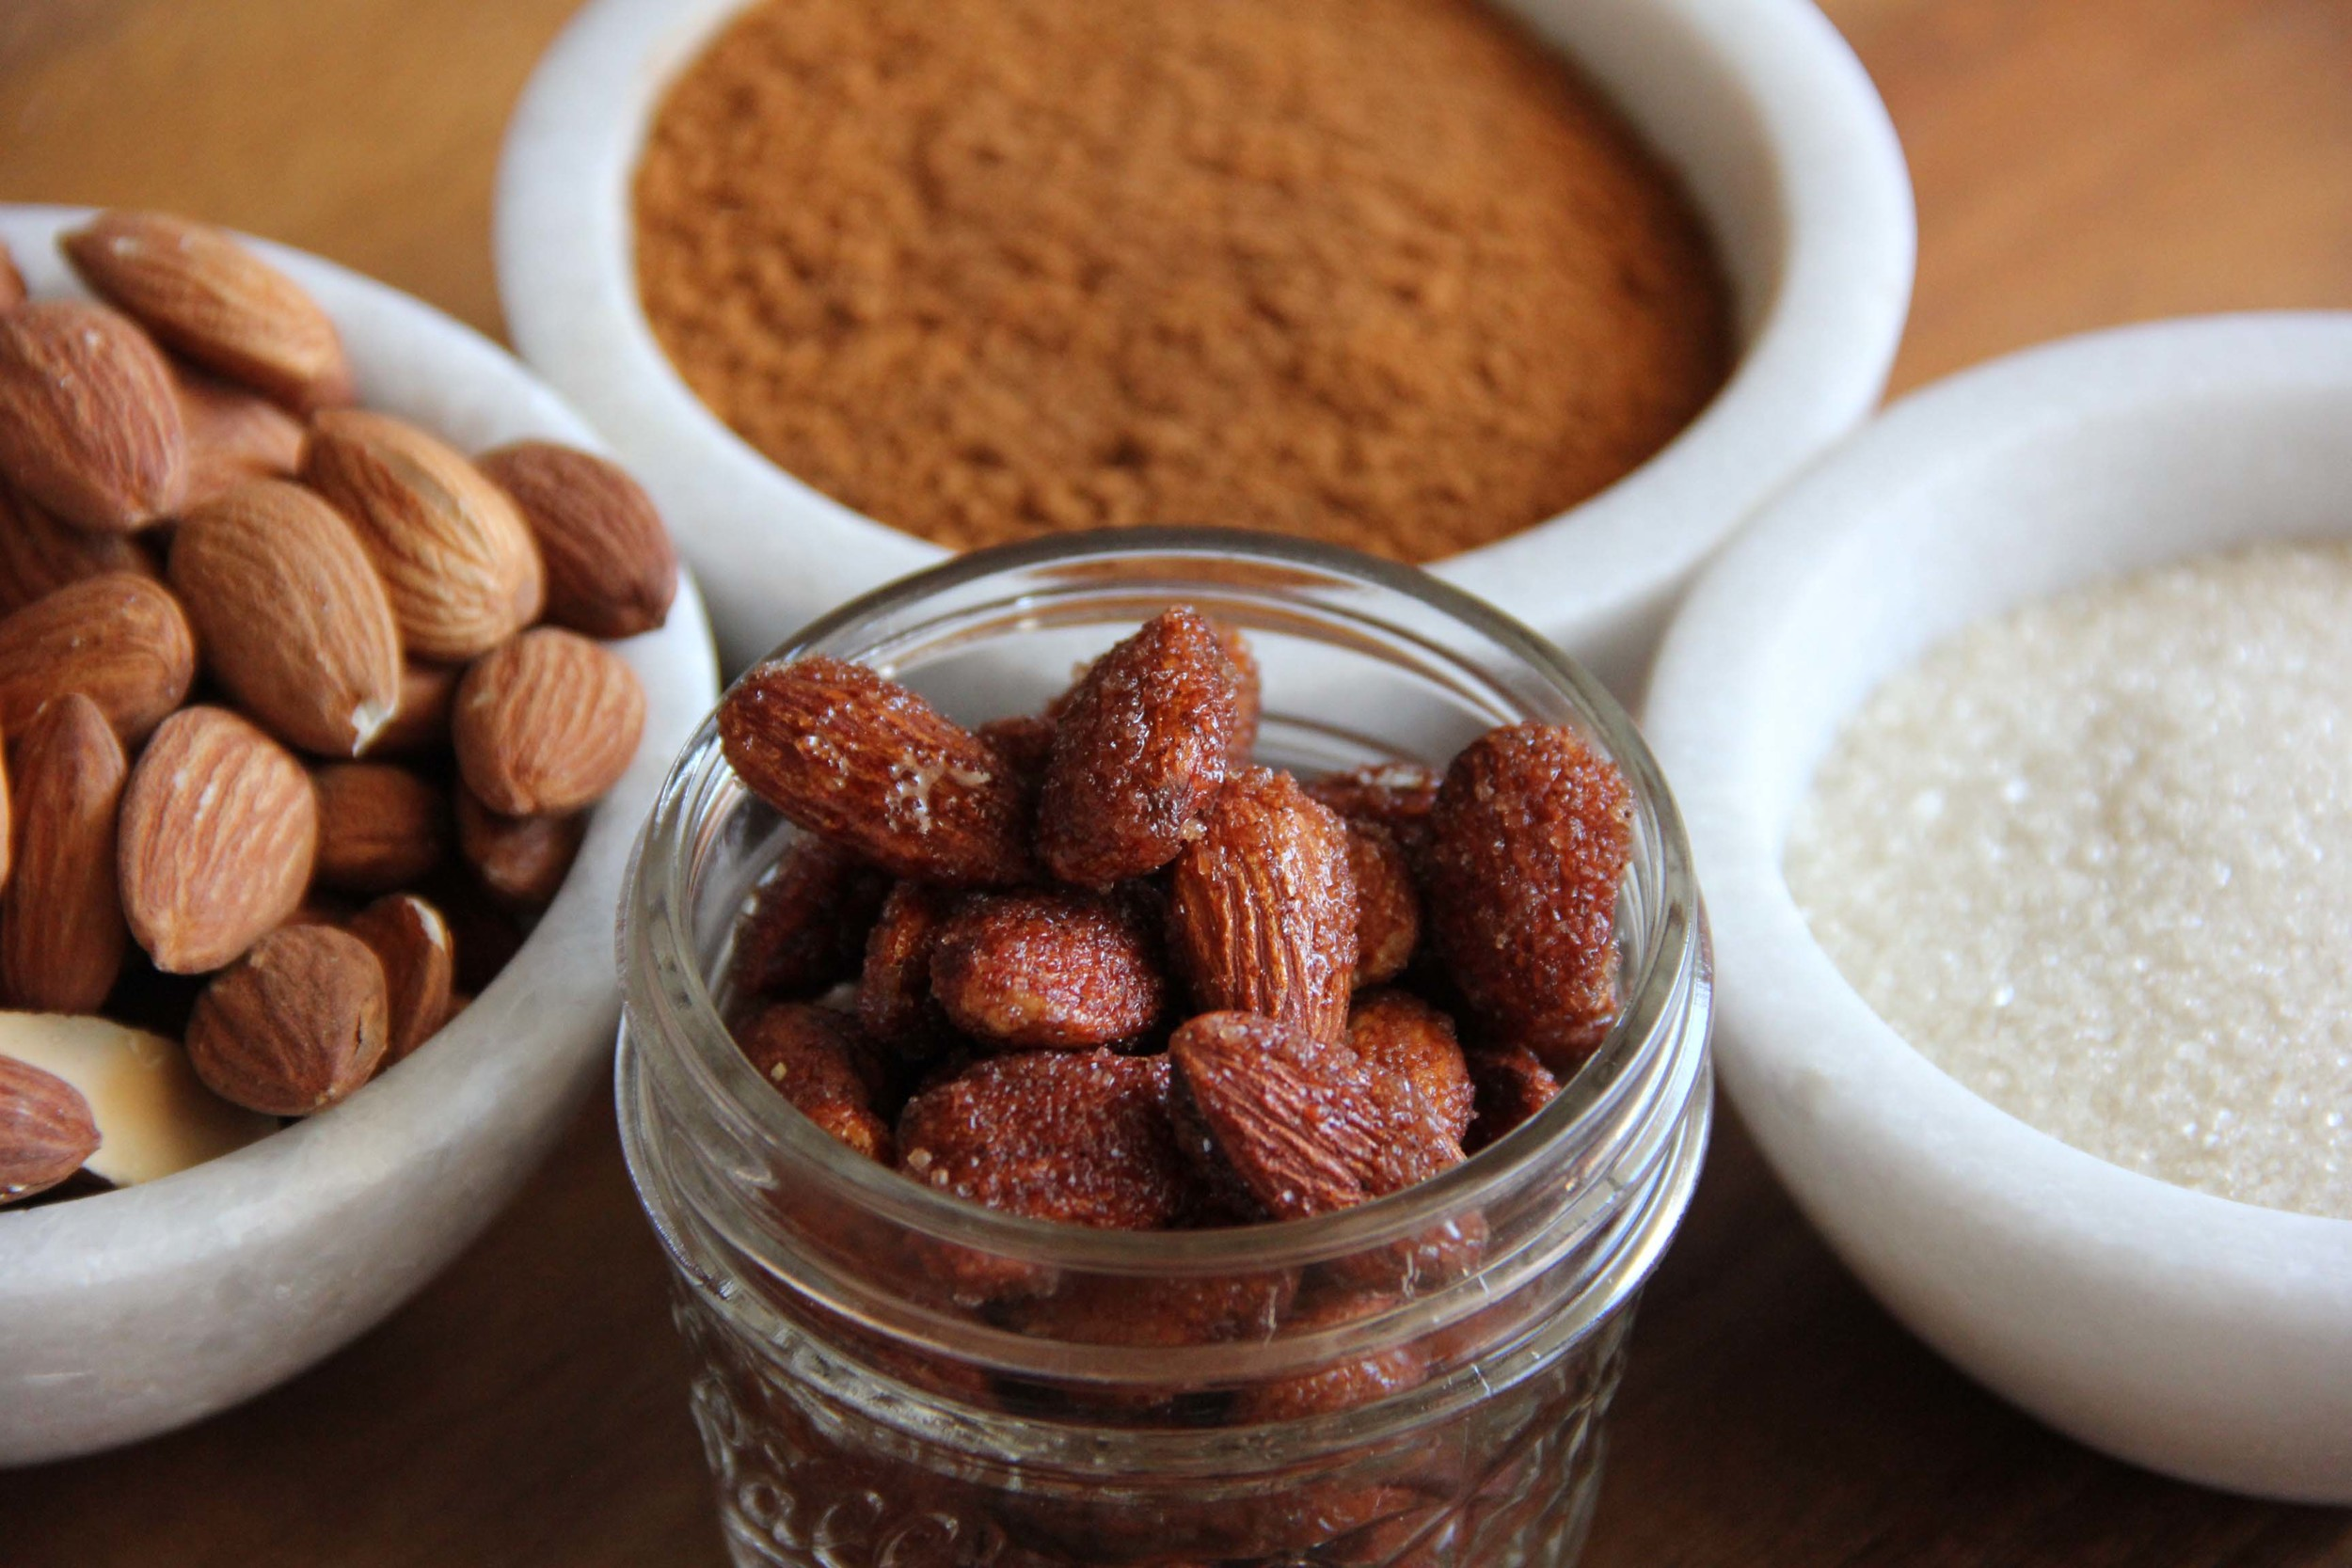 Made By Marissa > Handmade in Hawaii > Product > Cinnamon Agave Almonds > Product 3.jpg